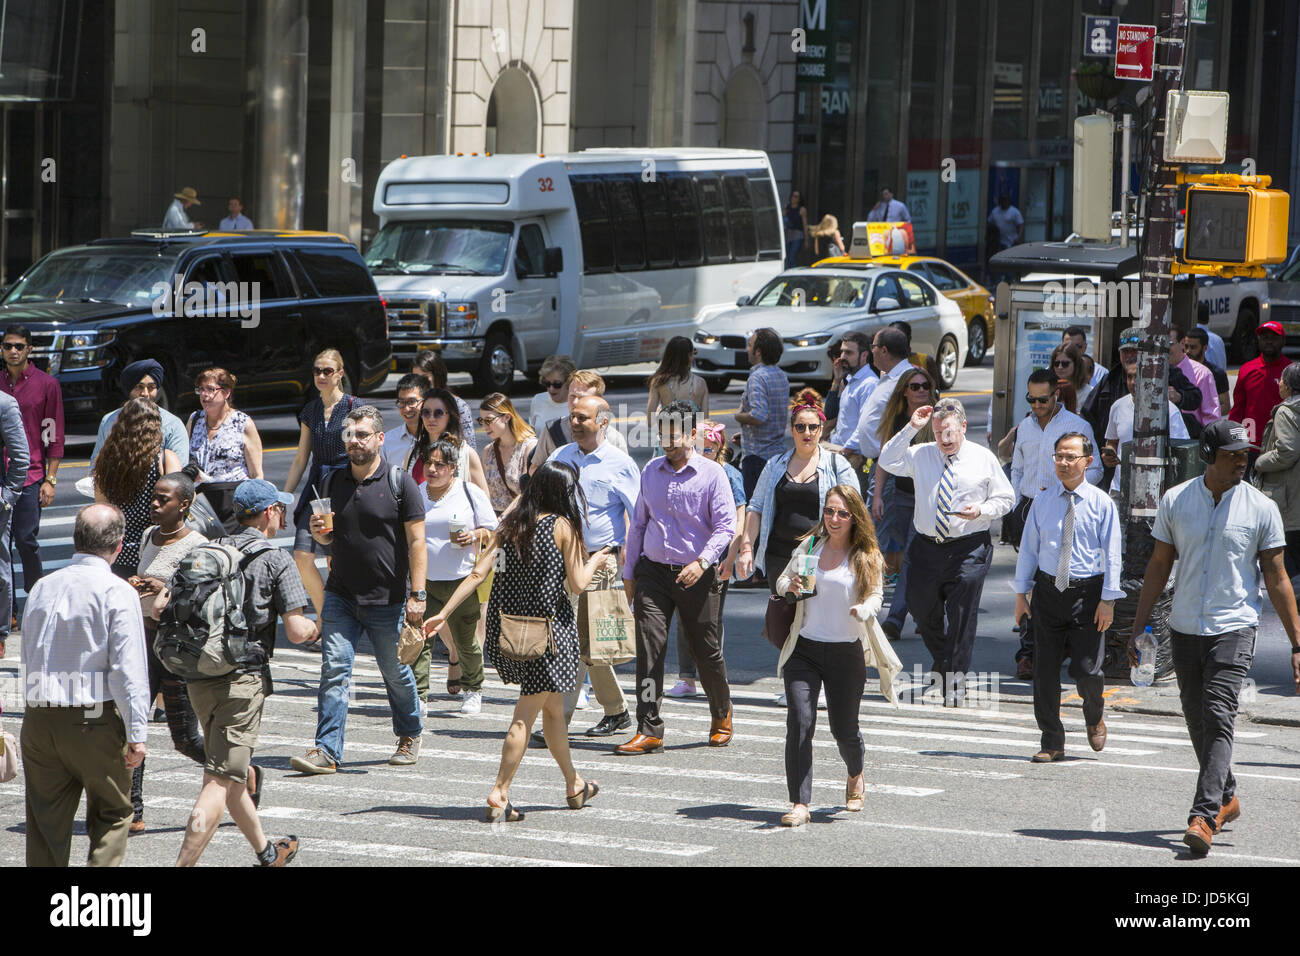 Crowds of pedestrians cross 5th Avenue along 42nd Street in midtown Manhattan. - Stock Image